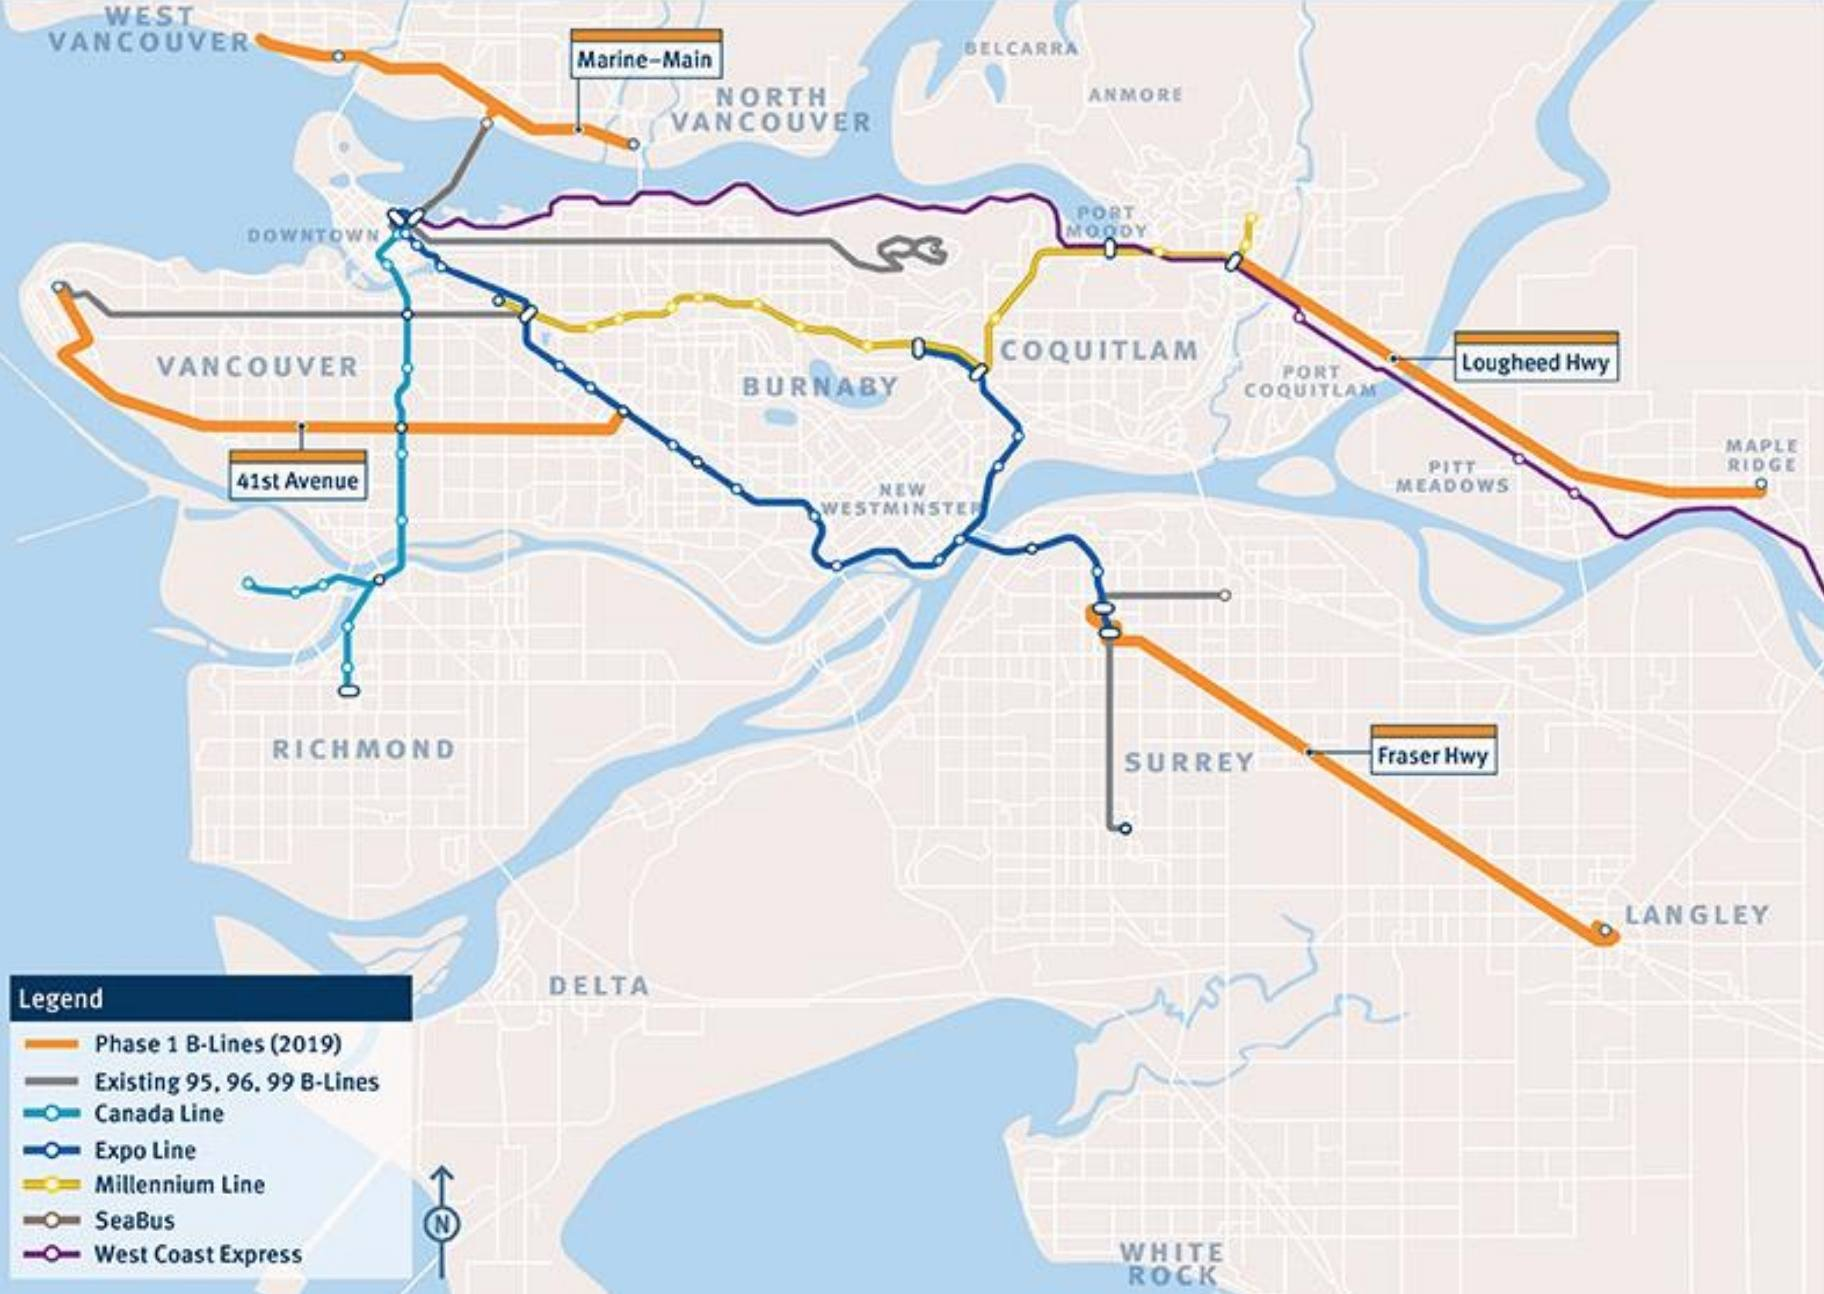 4 New B Line Routes To Be Launched In Metro Vancouver By